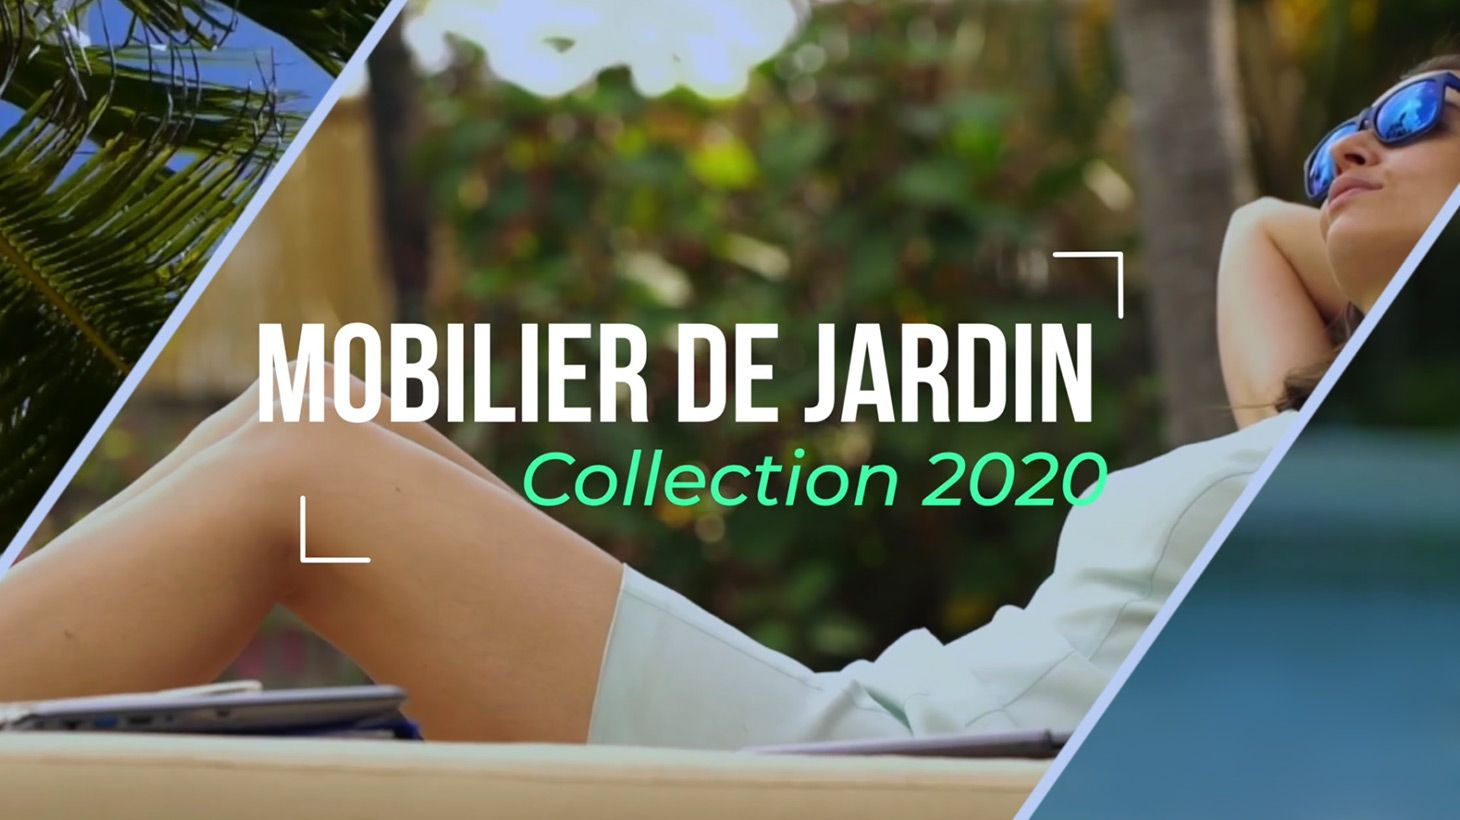 Mobilier de jardin ? Collection 2020